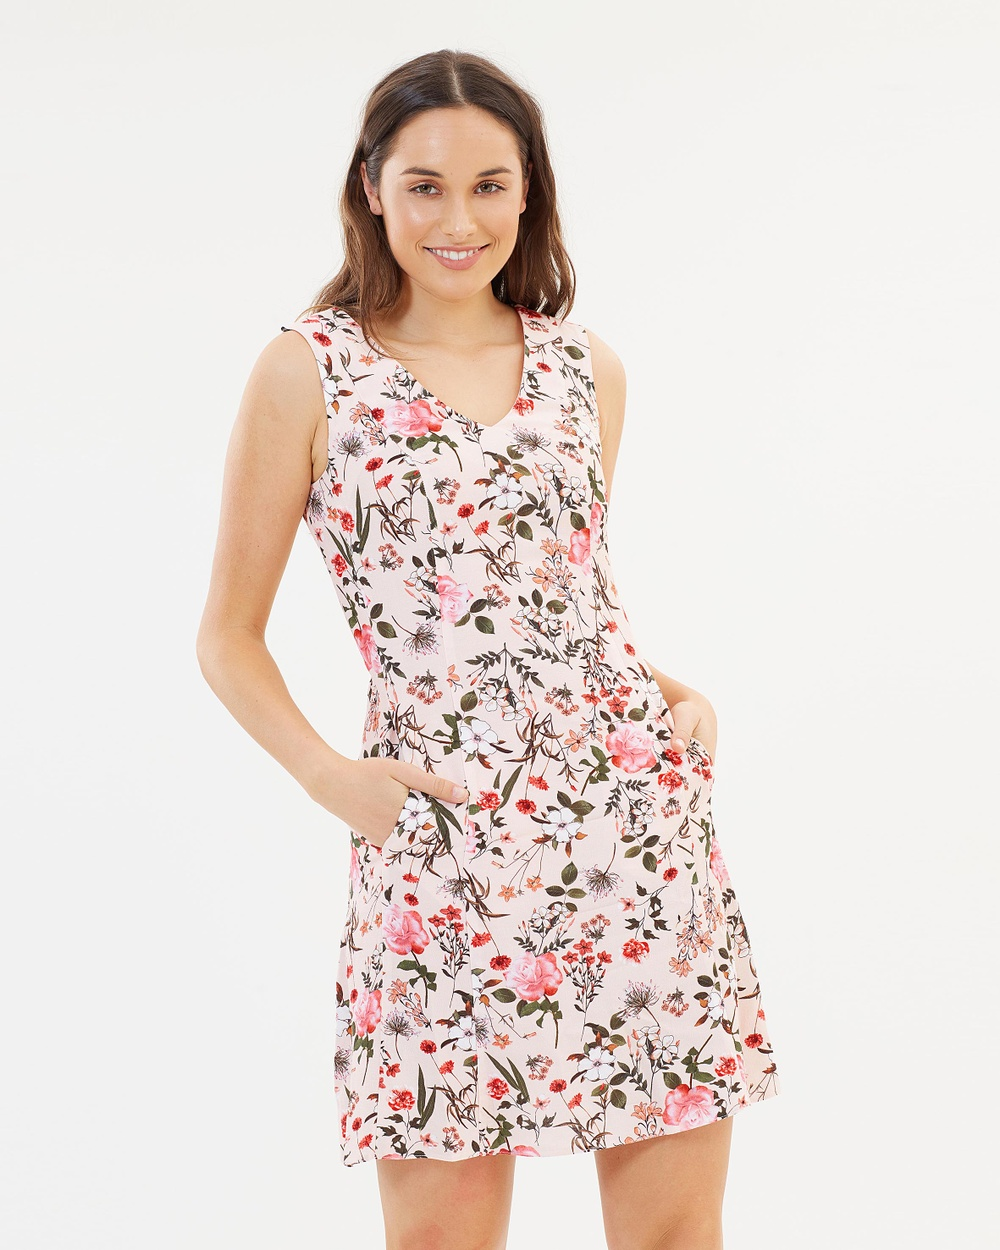 Dorothy Perkins Floral Fit and Flare Dress Printed Dresses Blush Floral Fit-and-Flare Dress